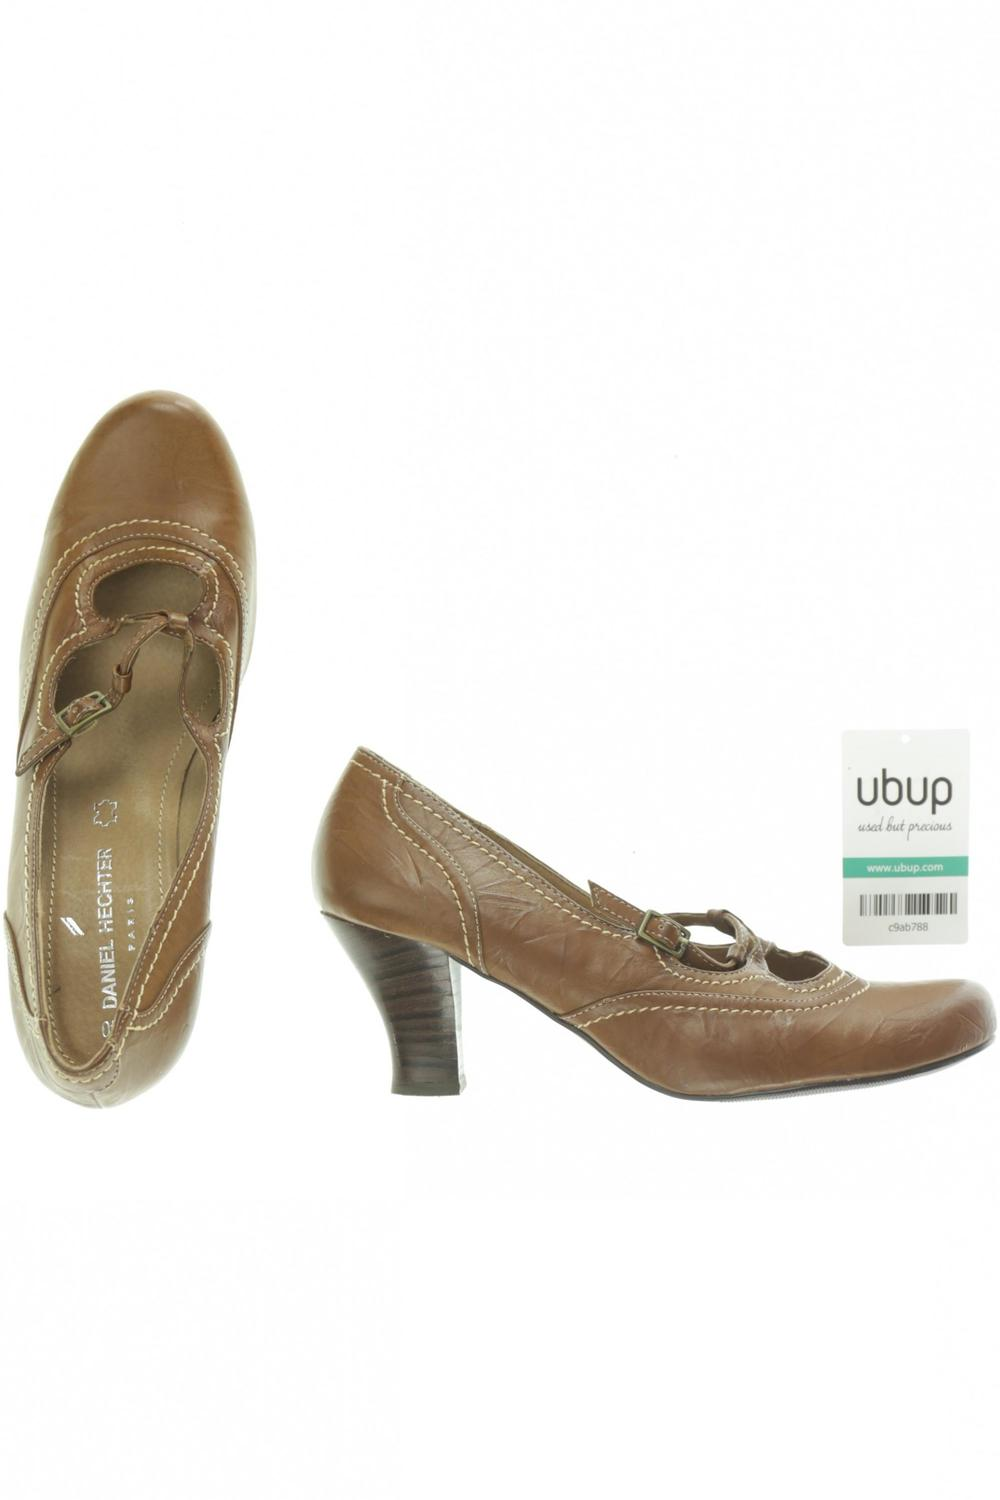 timeless design 79d38 d604b ubup | DANIEL HECHTER Damen Pumps DE 40 Second Hand kaufen